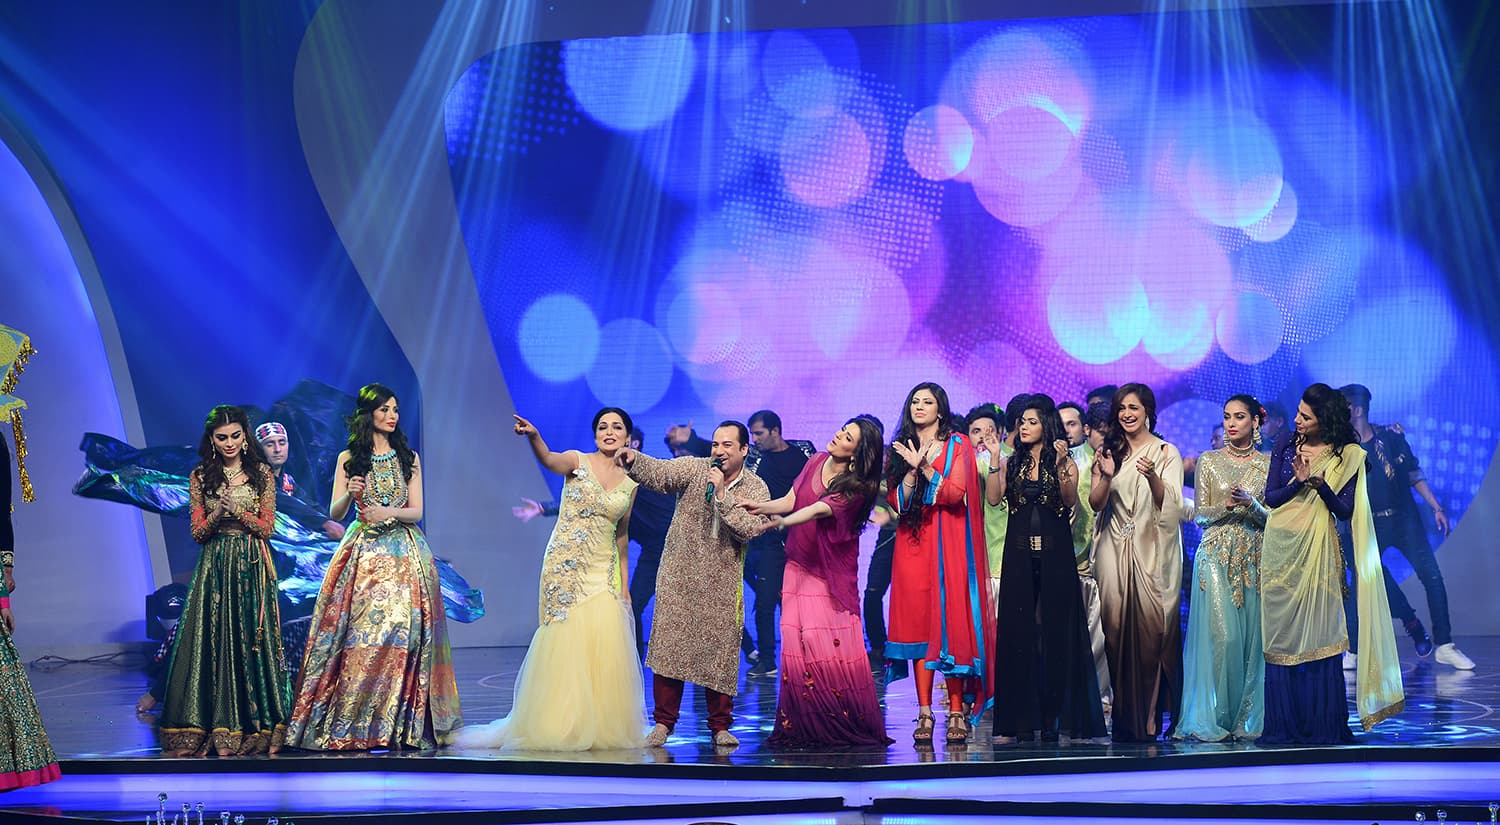 Rahat Fateh Ali Khan closed the night with some of his classics – Publicity photo